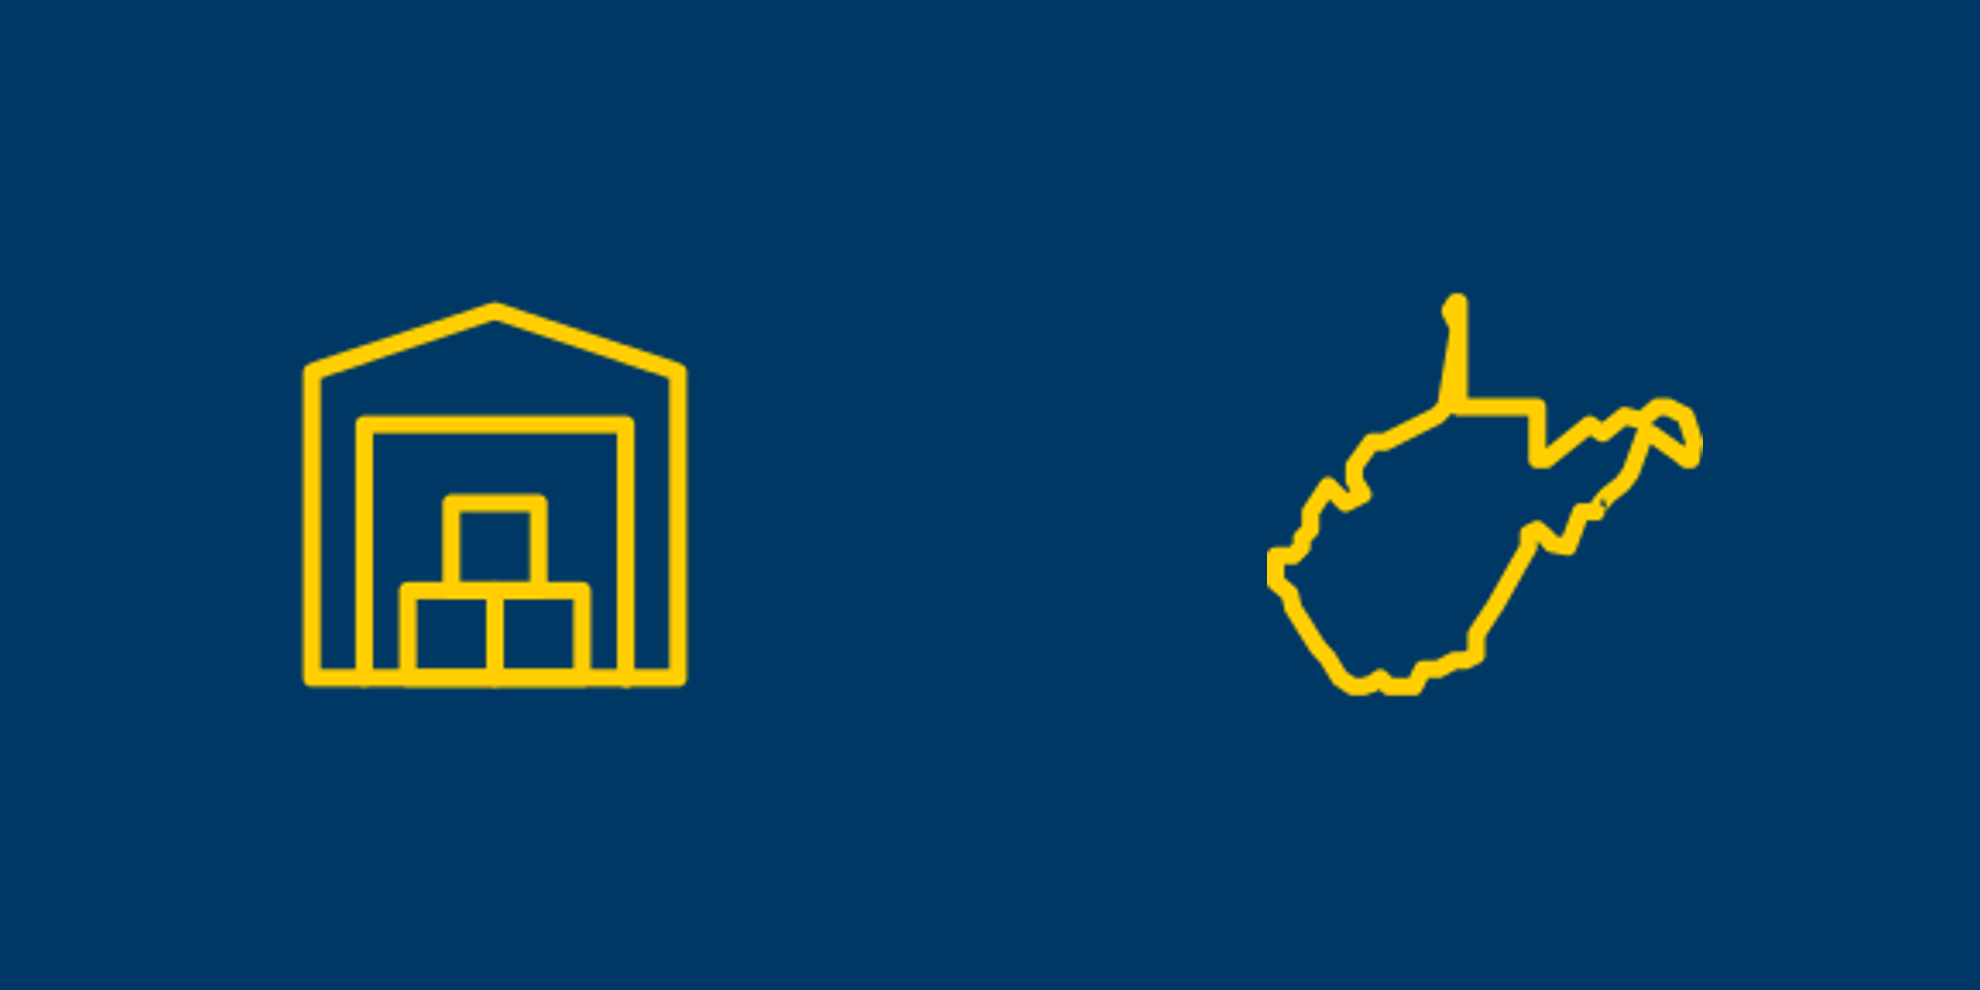 Self storage and West Virginia icons